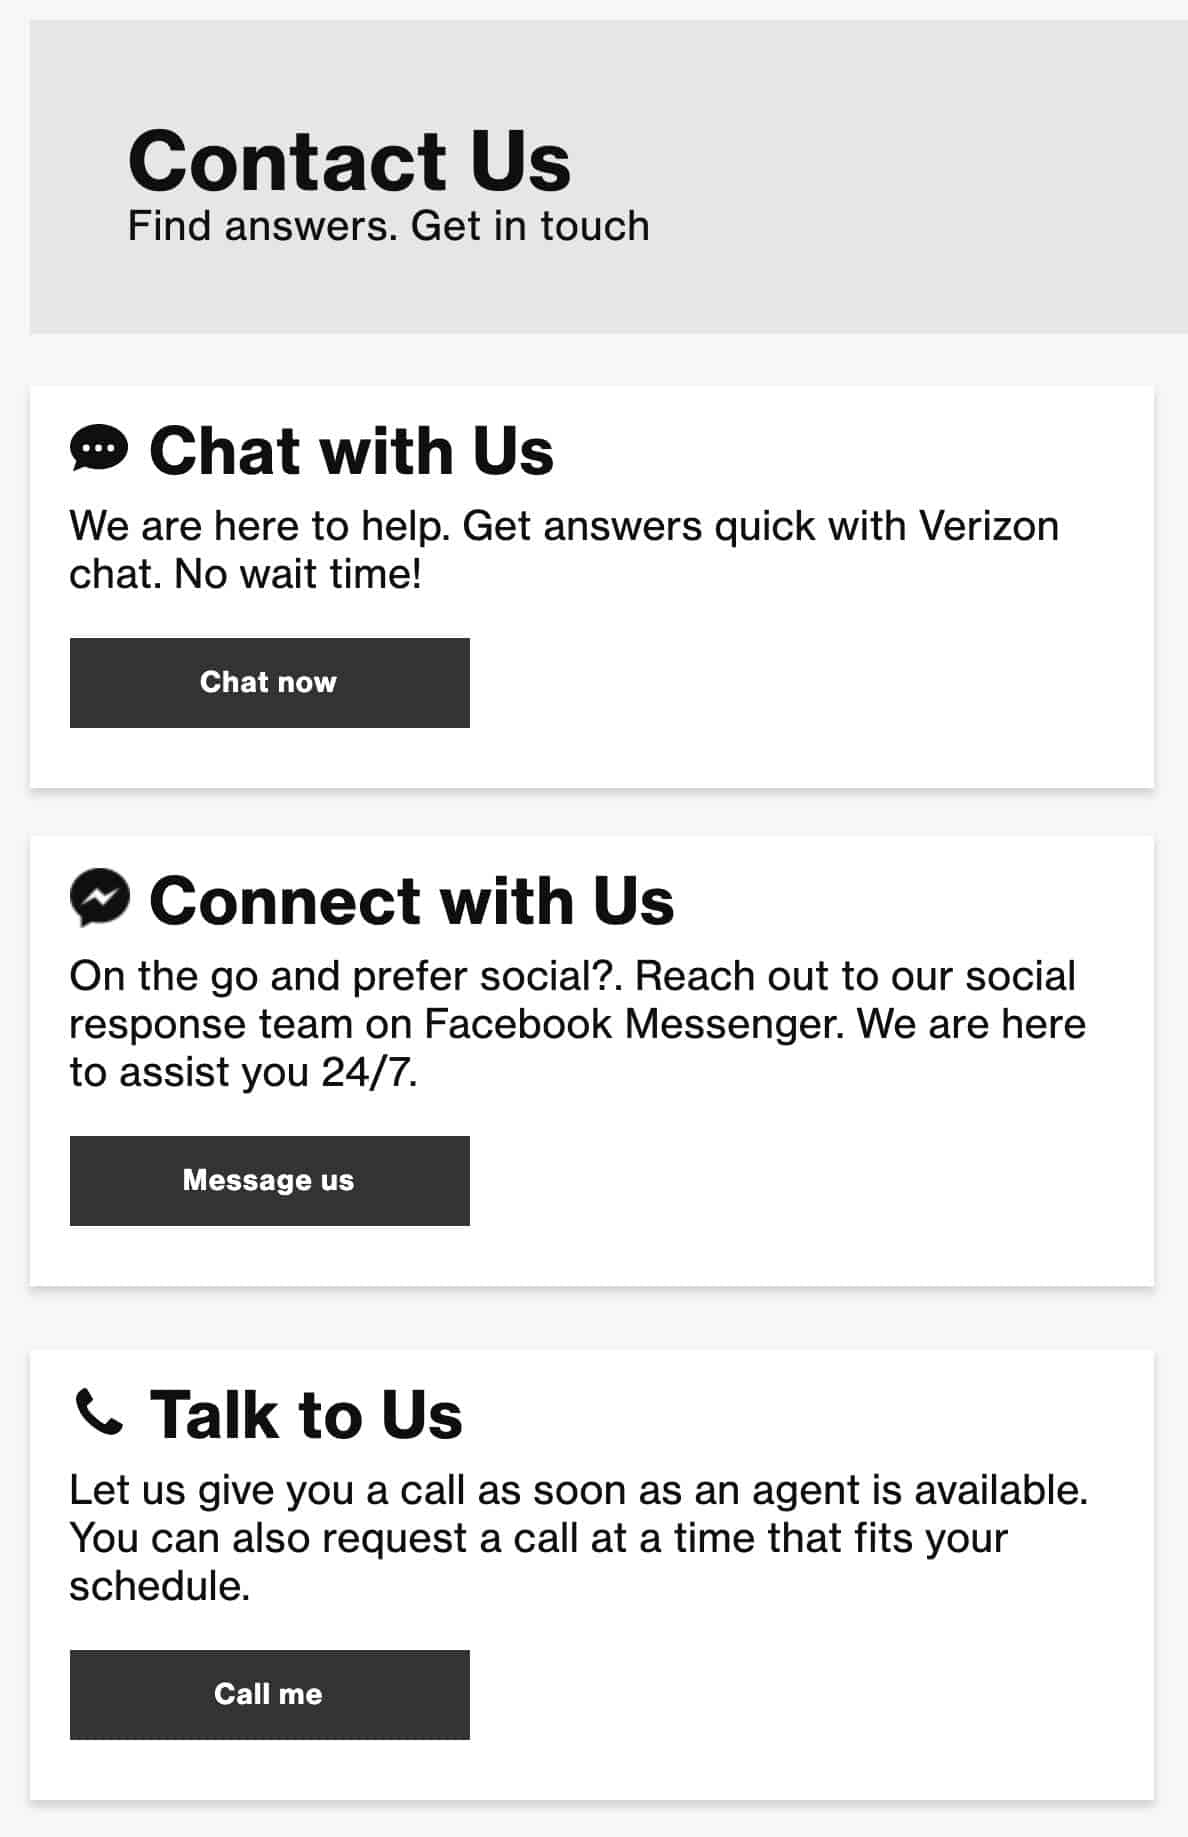 Contact screen with 3 ways to get in touch - Chat, Messanger, and Phone